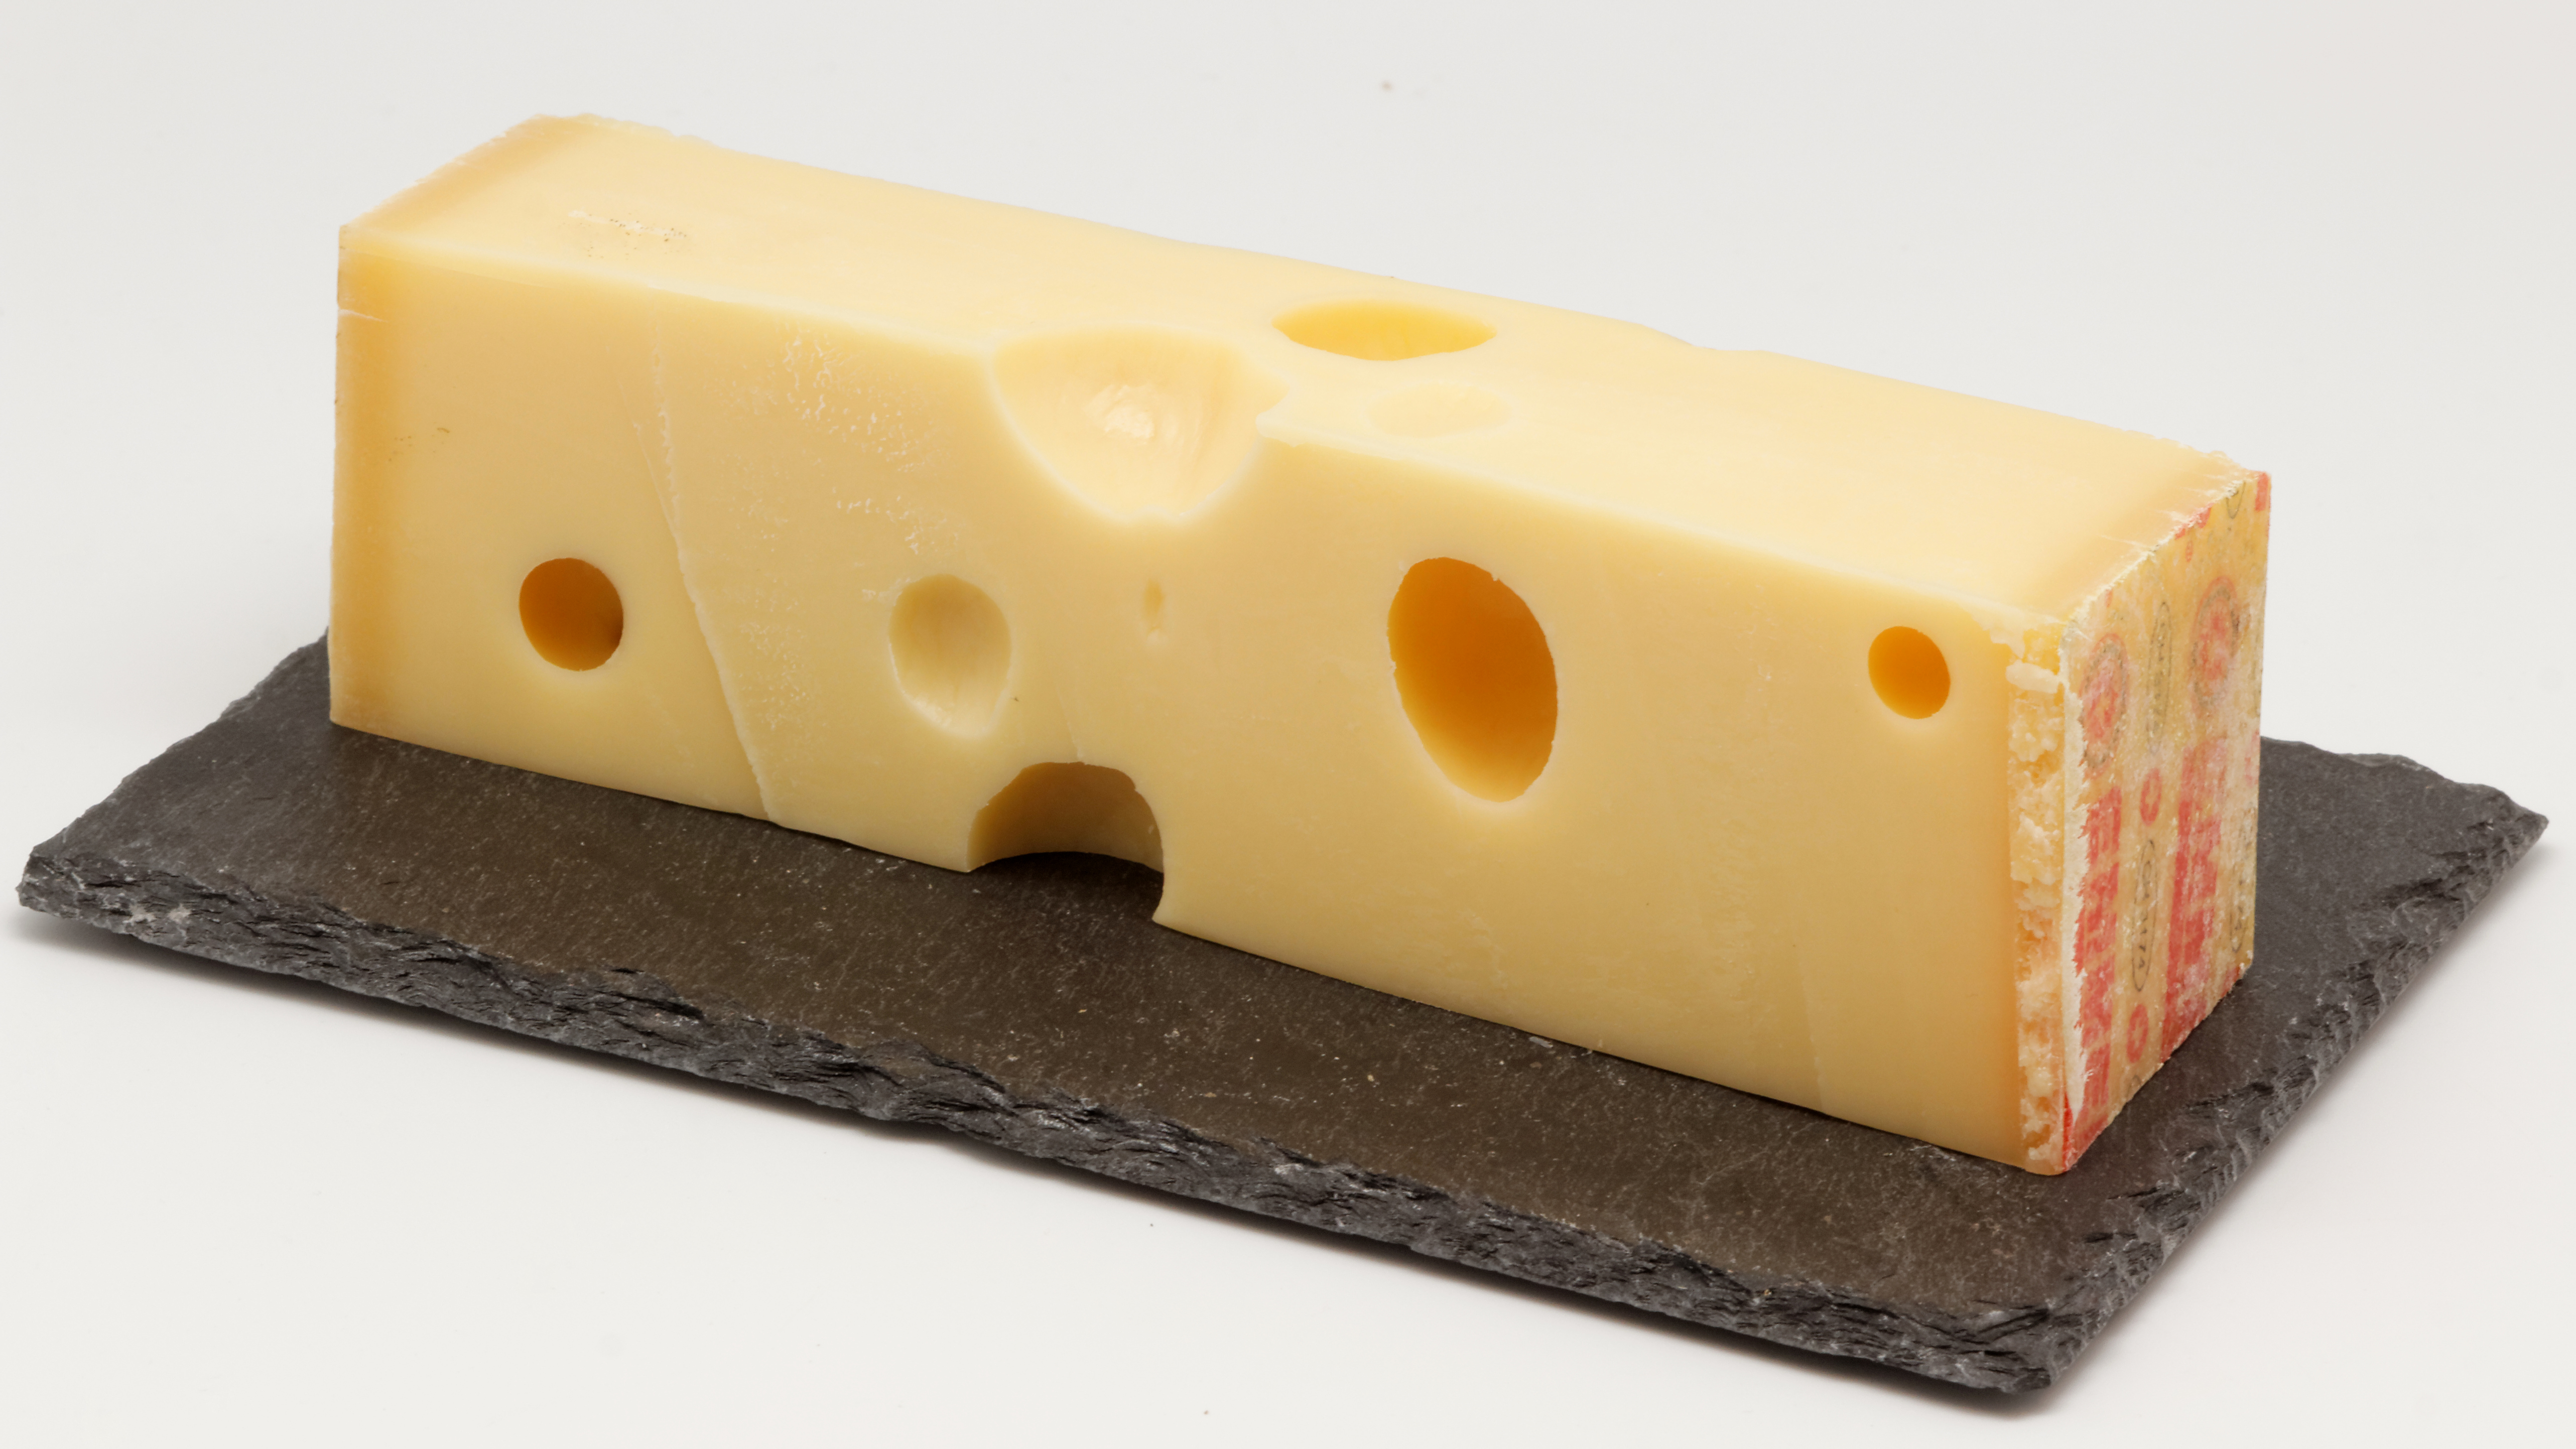 https://upload.wikimedia.org/wikipedia/commons/c/cc/Emmental_%28fromage%29_01.jpg